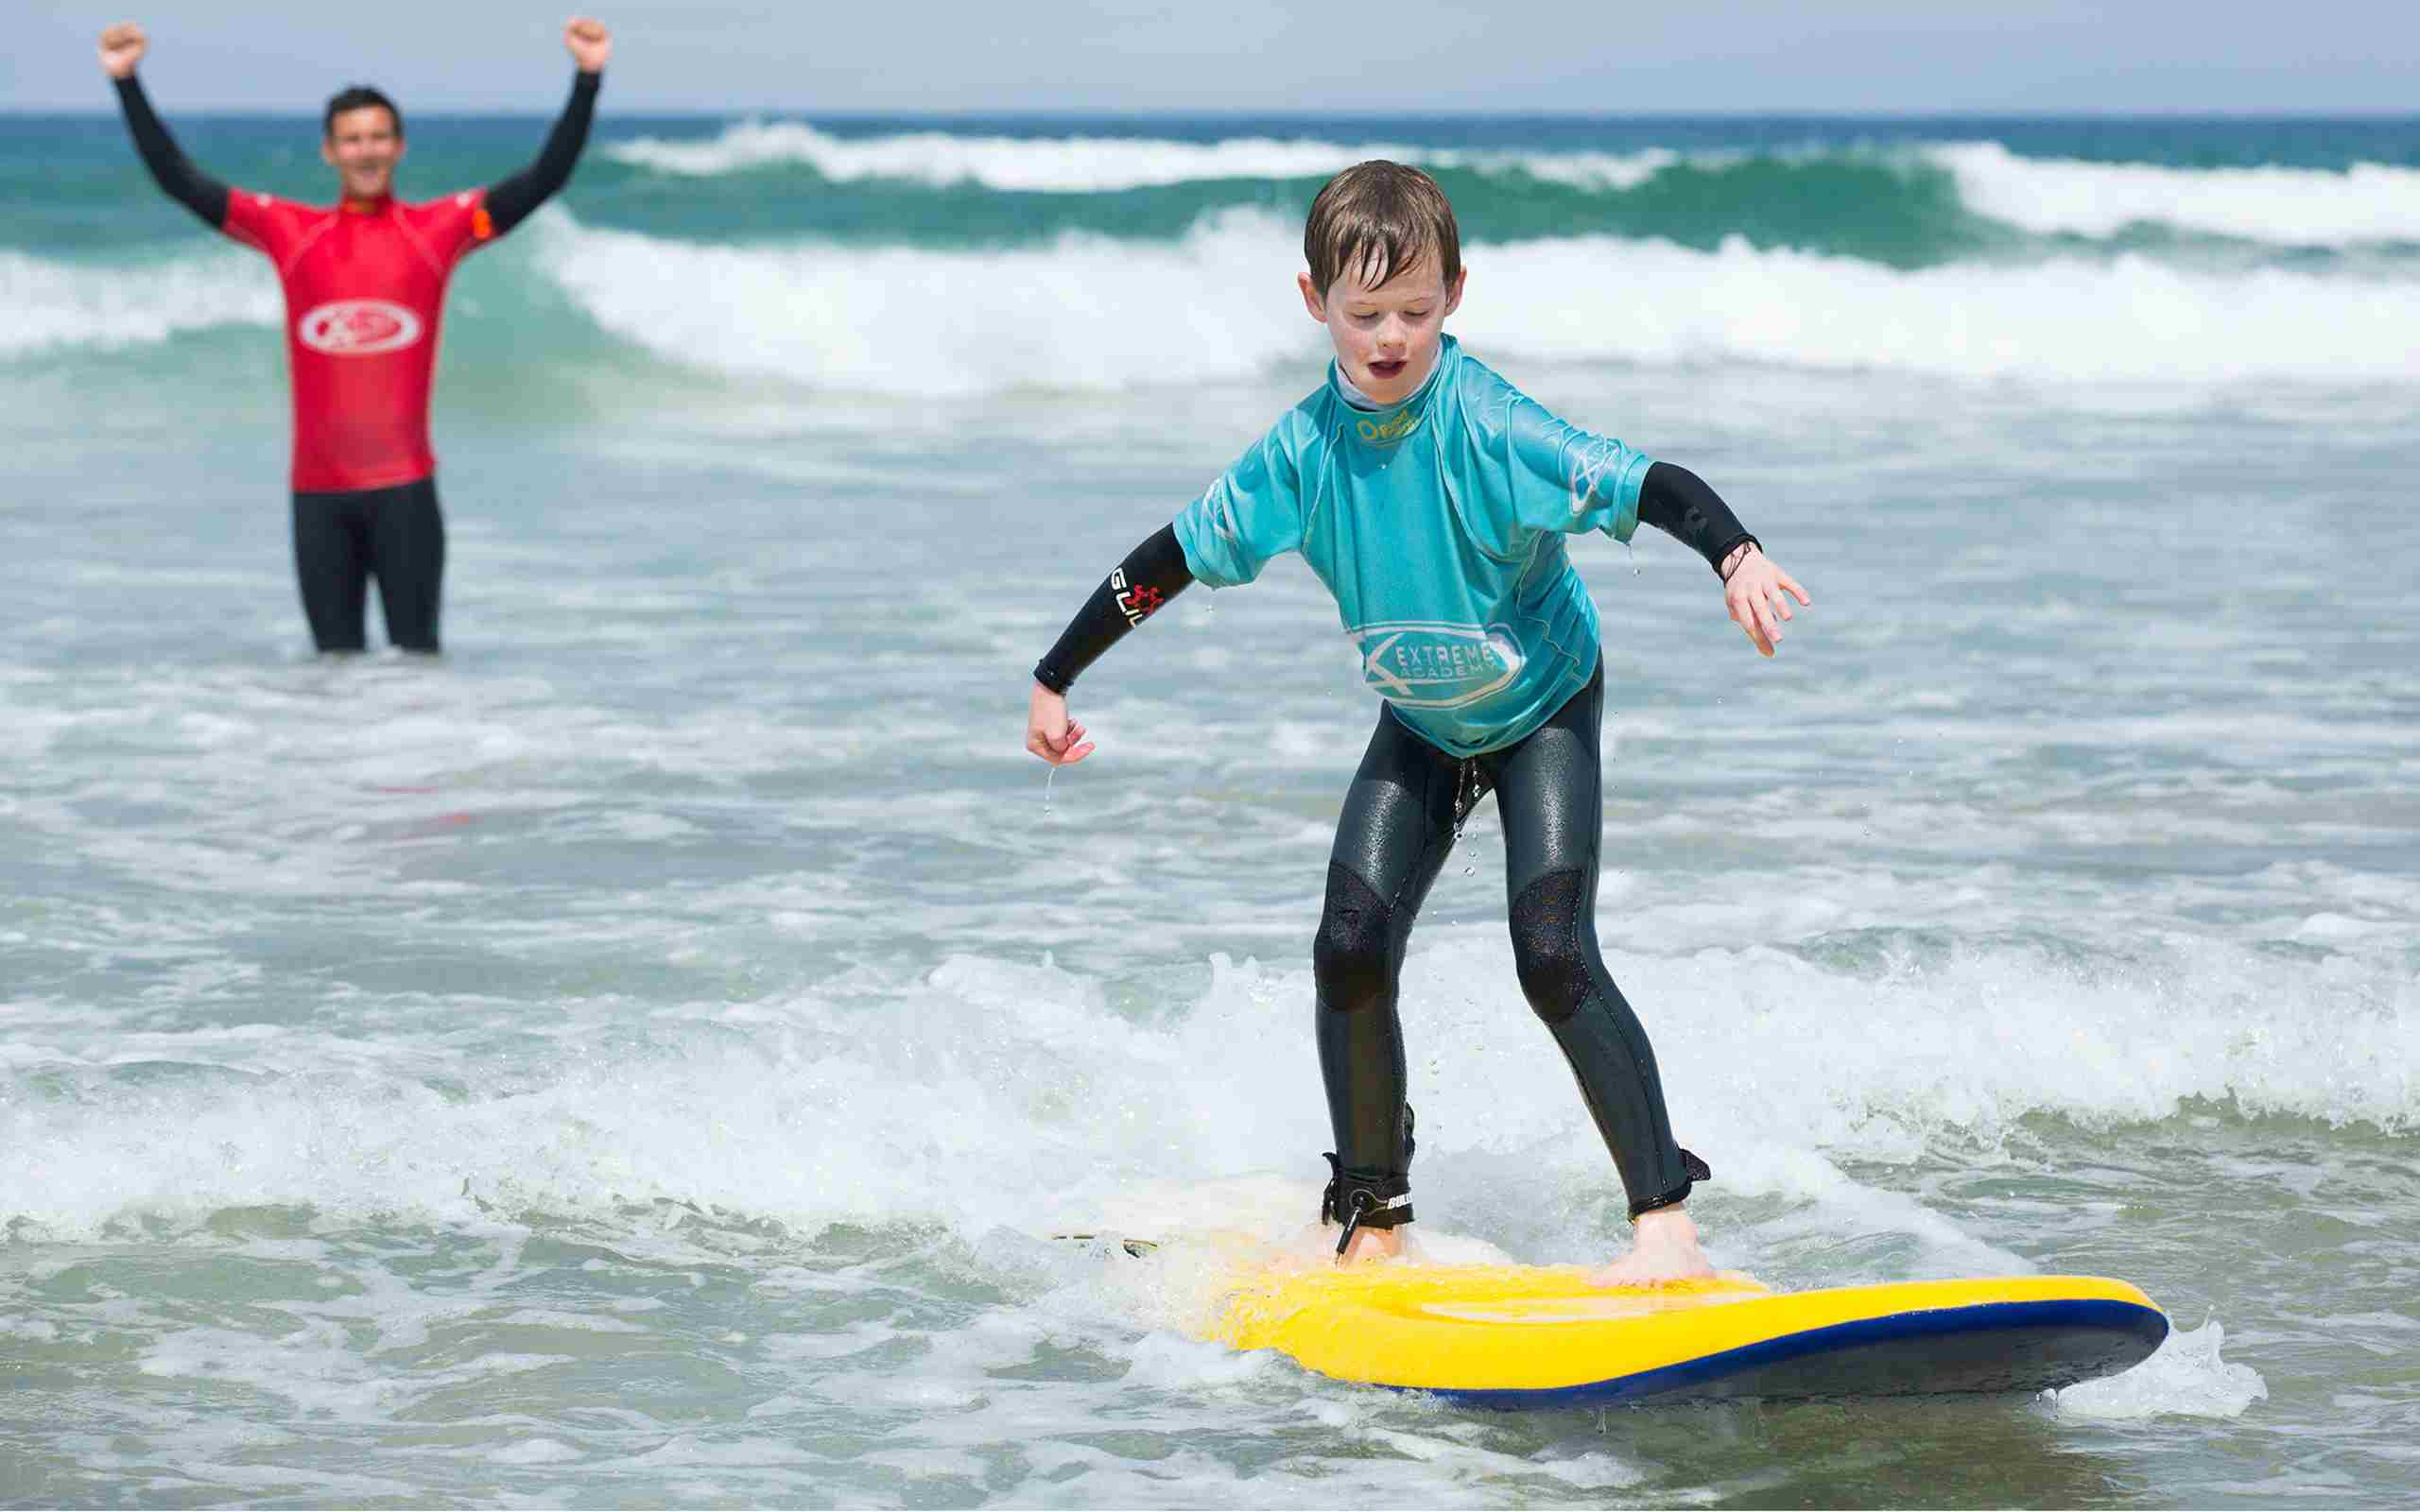 Surf Lesson With The Extreme Academy (2)